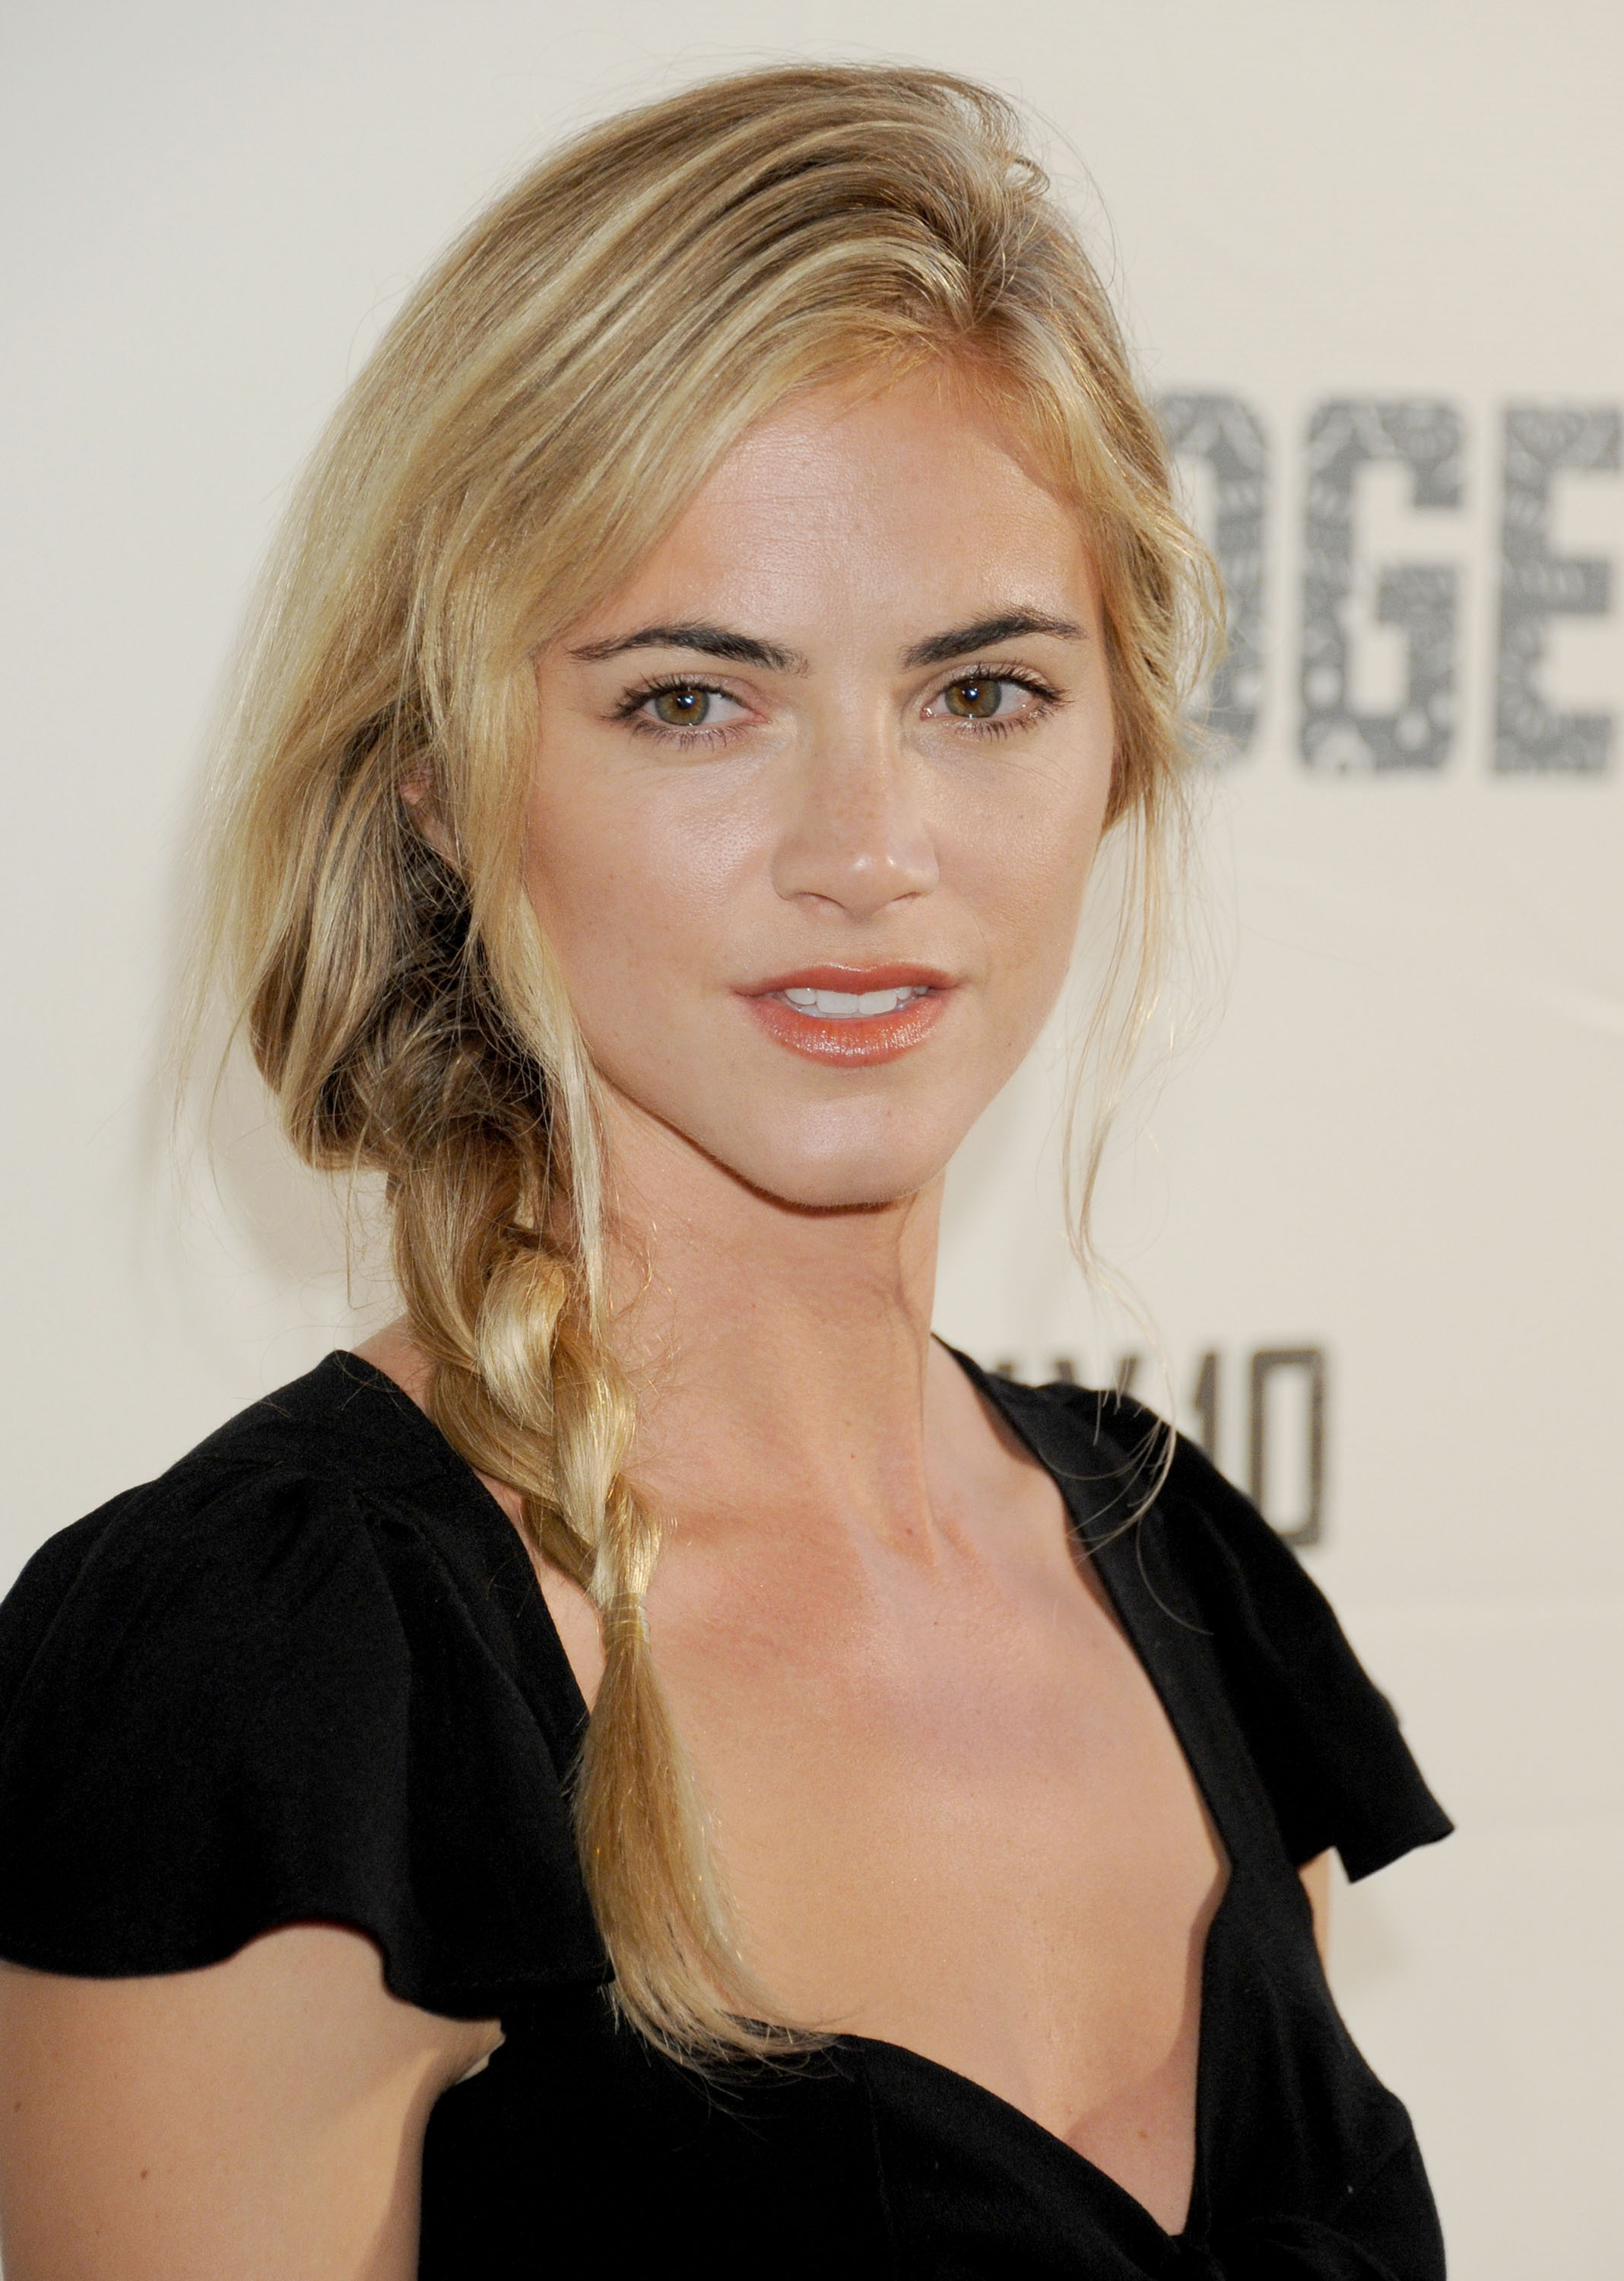 Emily Wickersham Wallpapers High Resolution and Quality